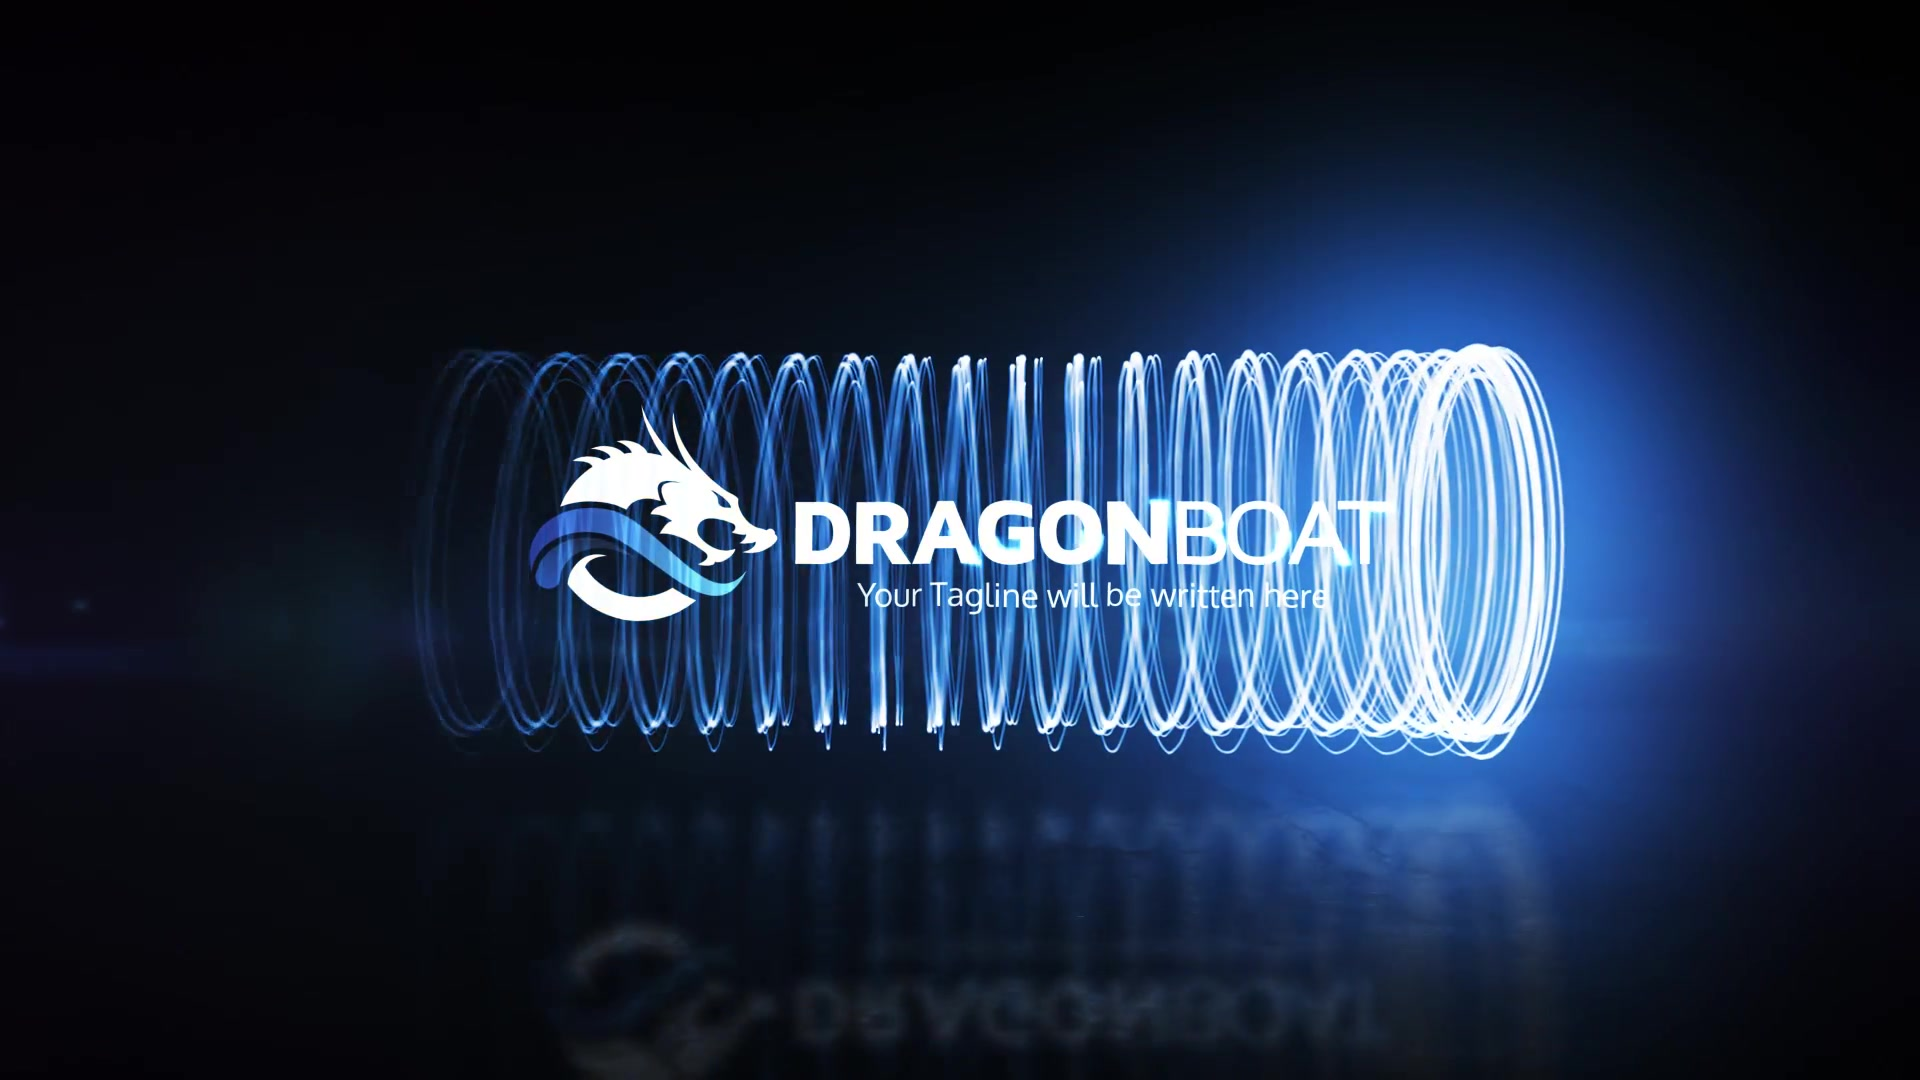 Inductor Reveal - Download Videohive 14015305